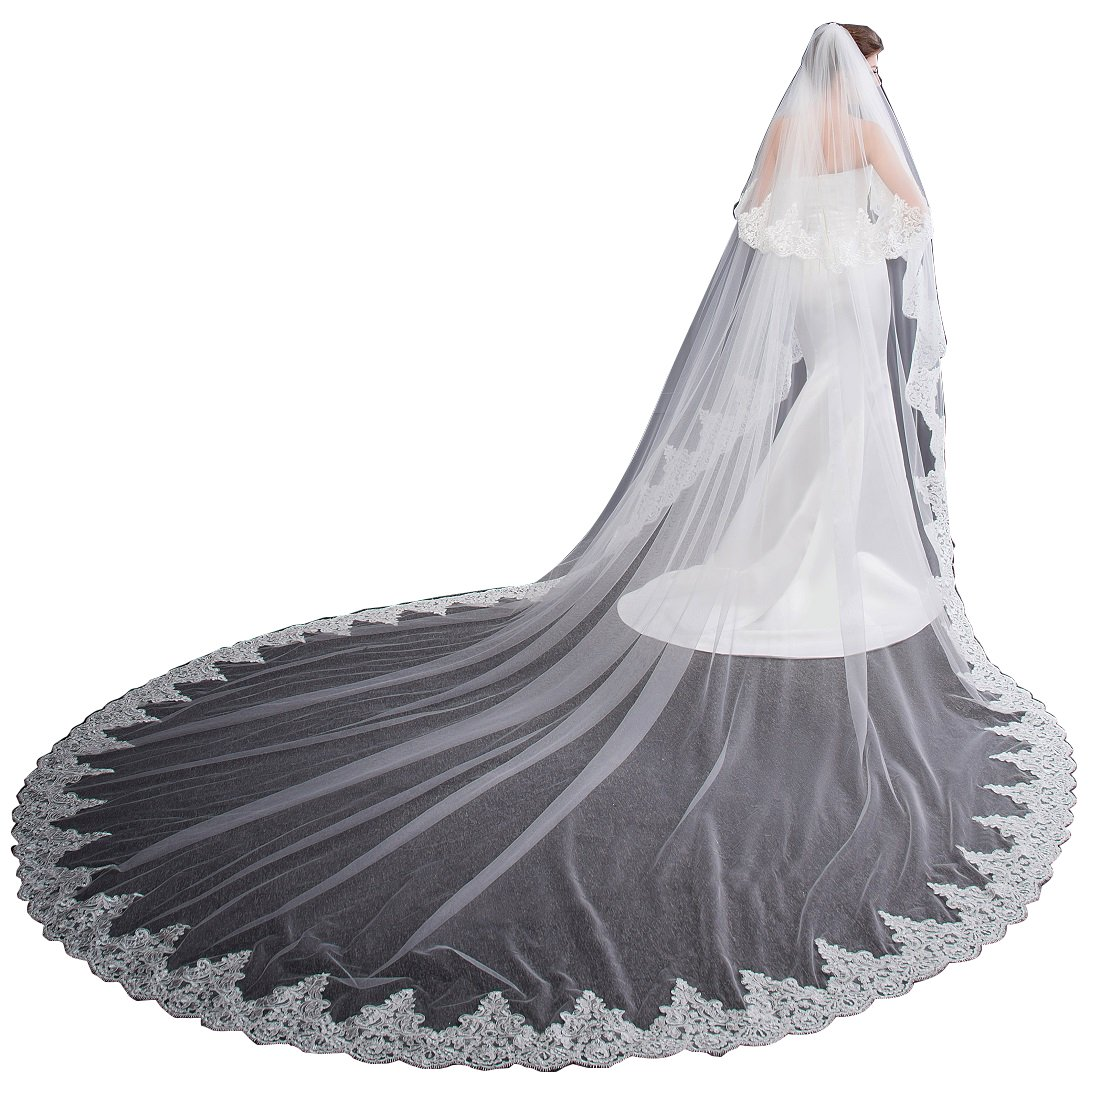 EllieHouse Women's 2 Tier Cathedral Lace White Wedding Bridal Veil With Comb L01WT